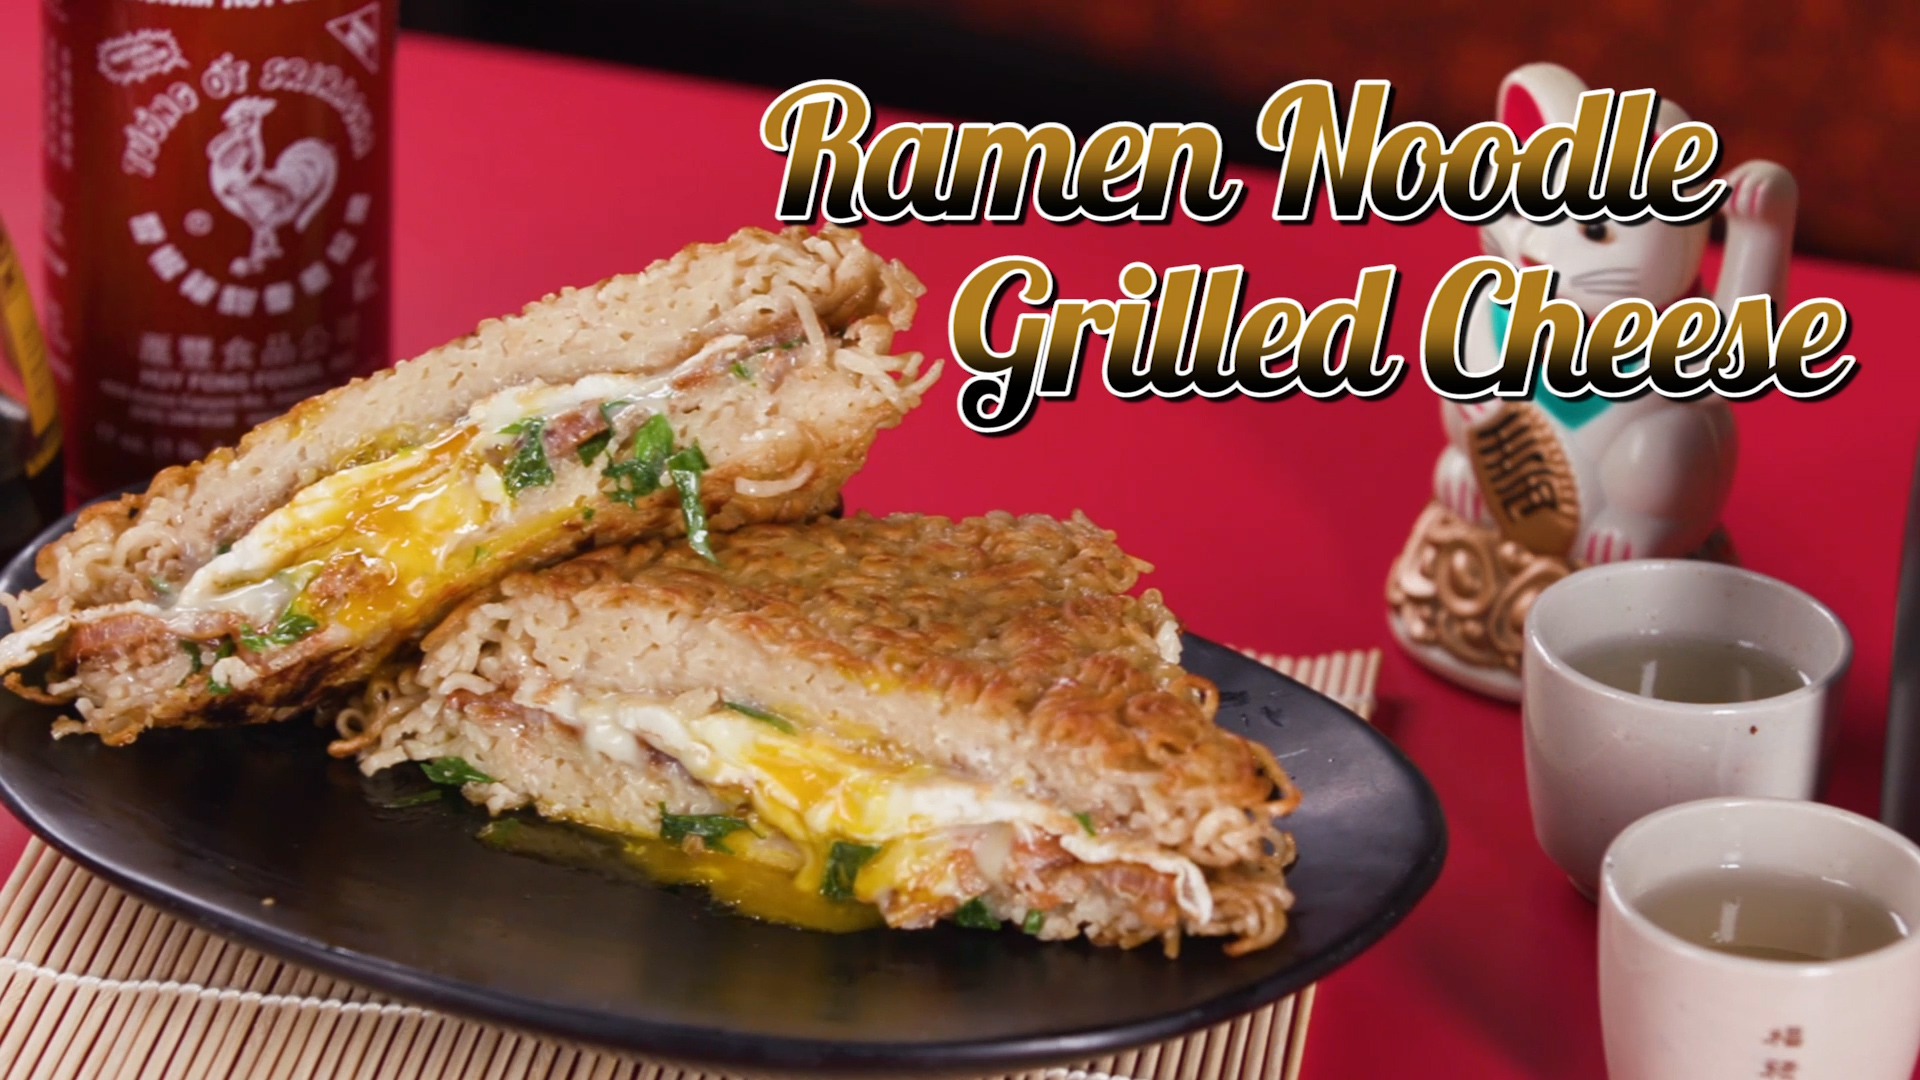 Ramen Noodles Grilled Cheese